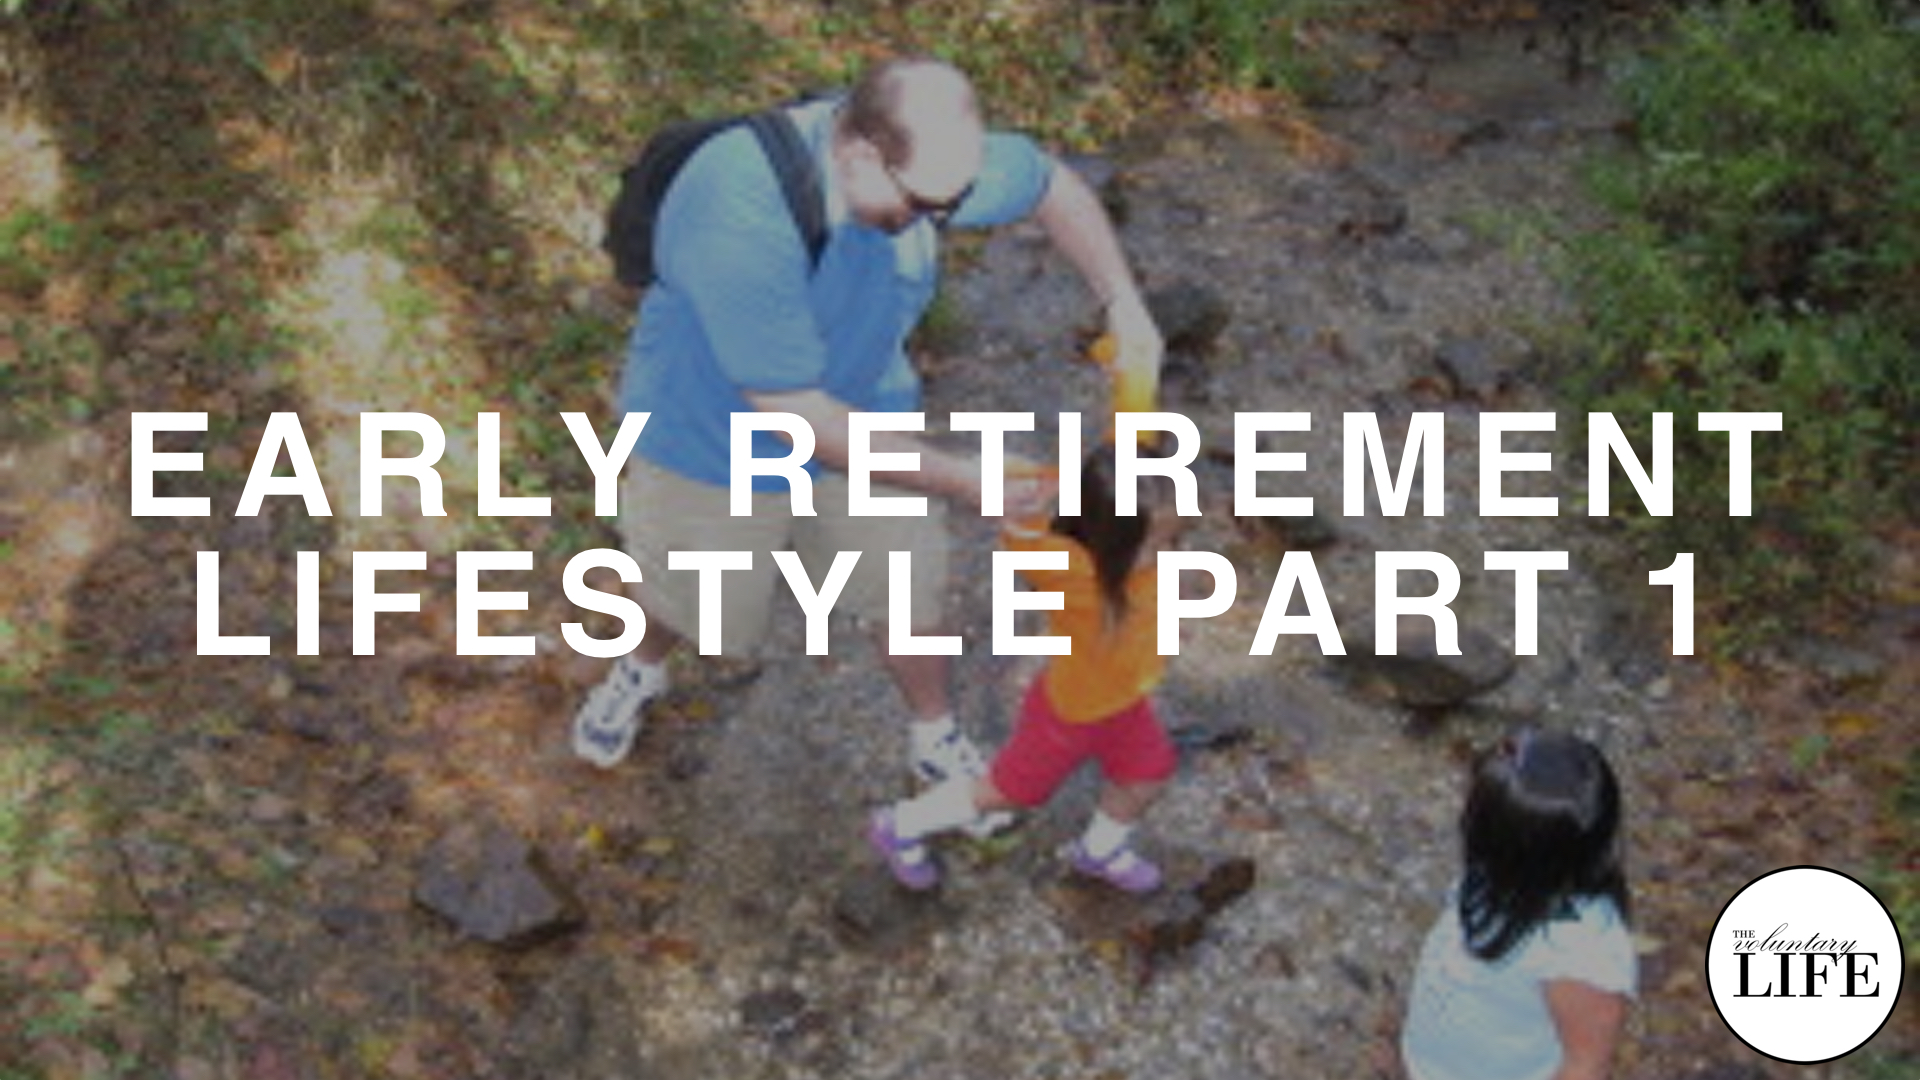 221 Early Retirement Lifestyle Part 1